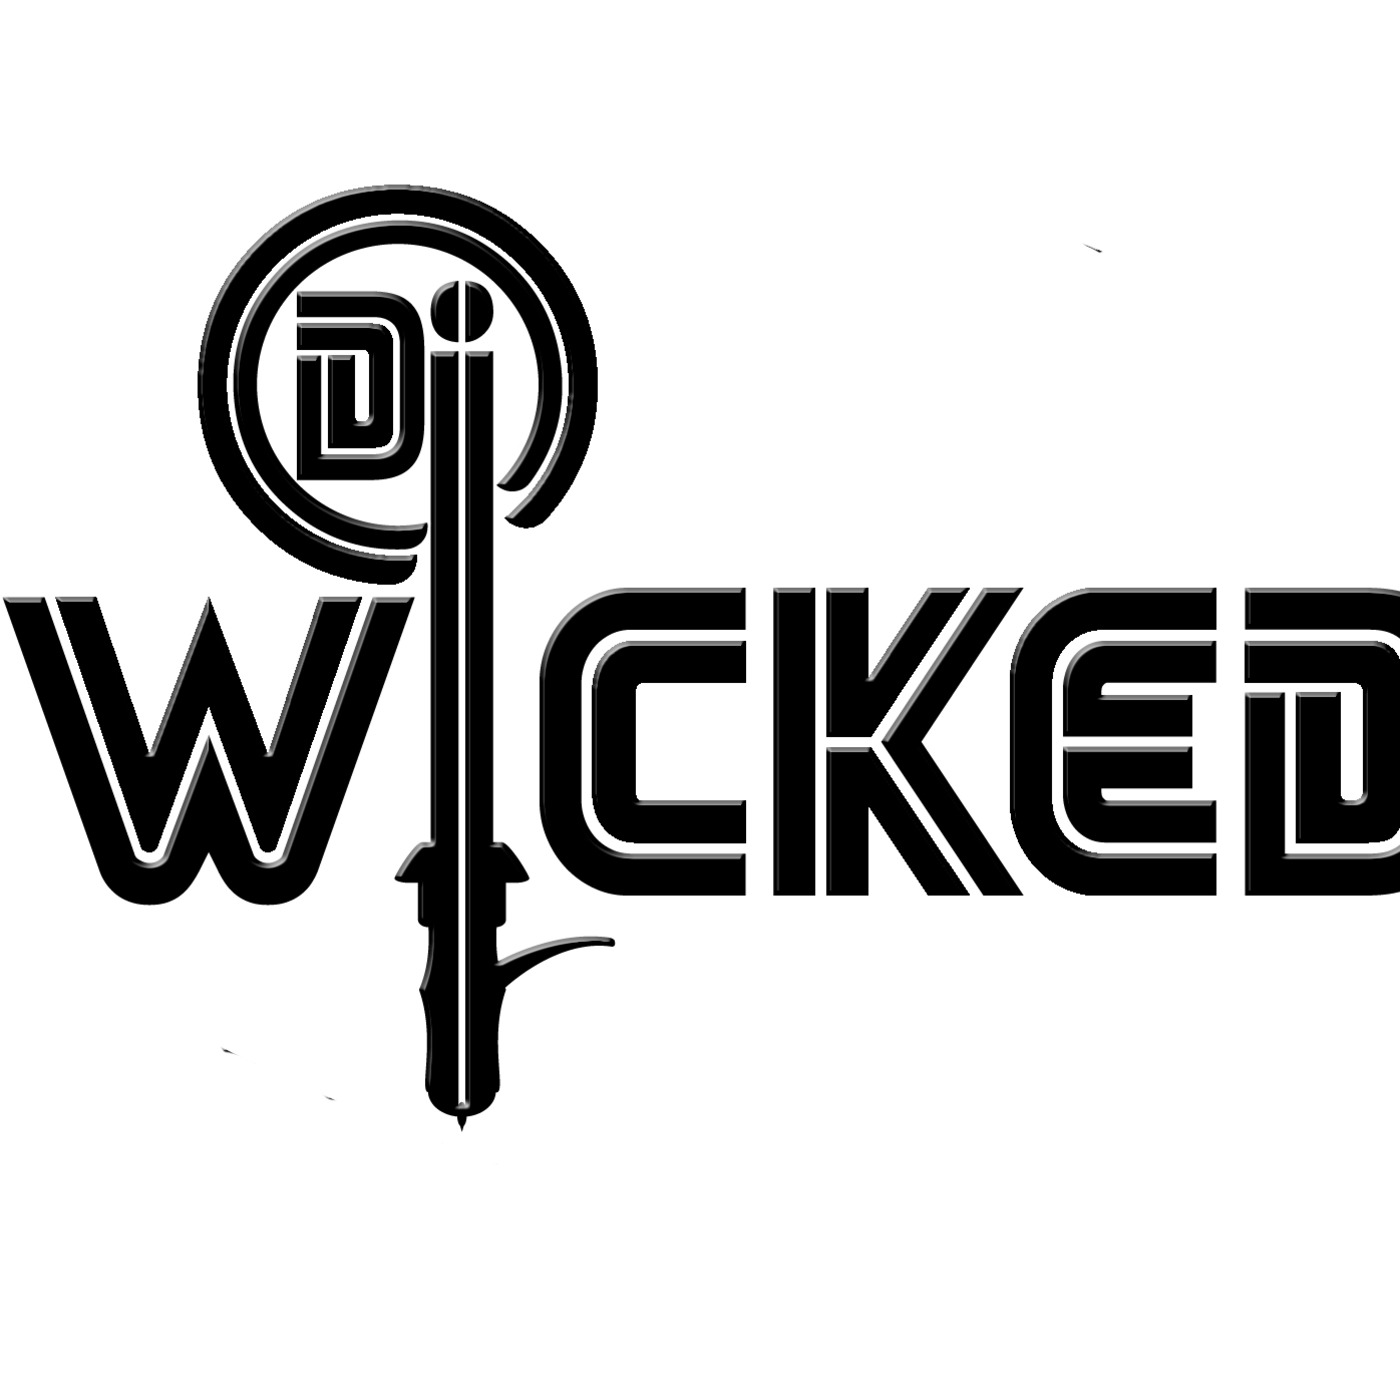 DJ WICKED PODCAST